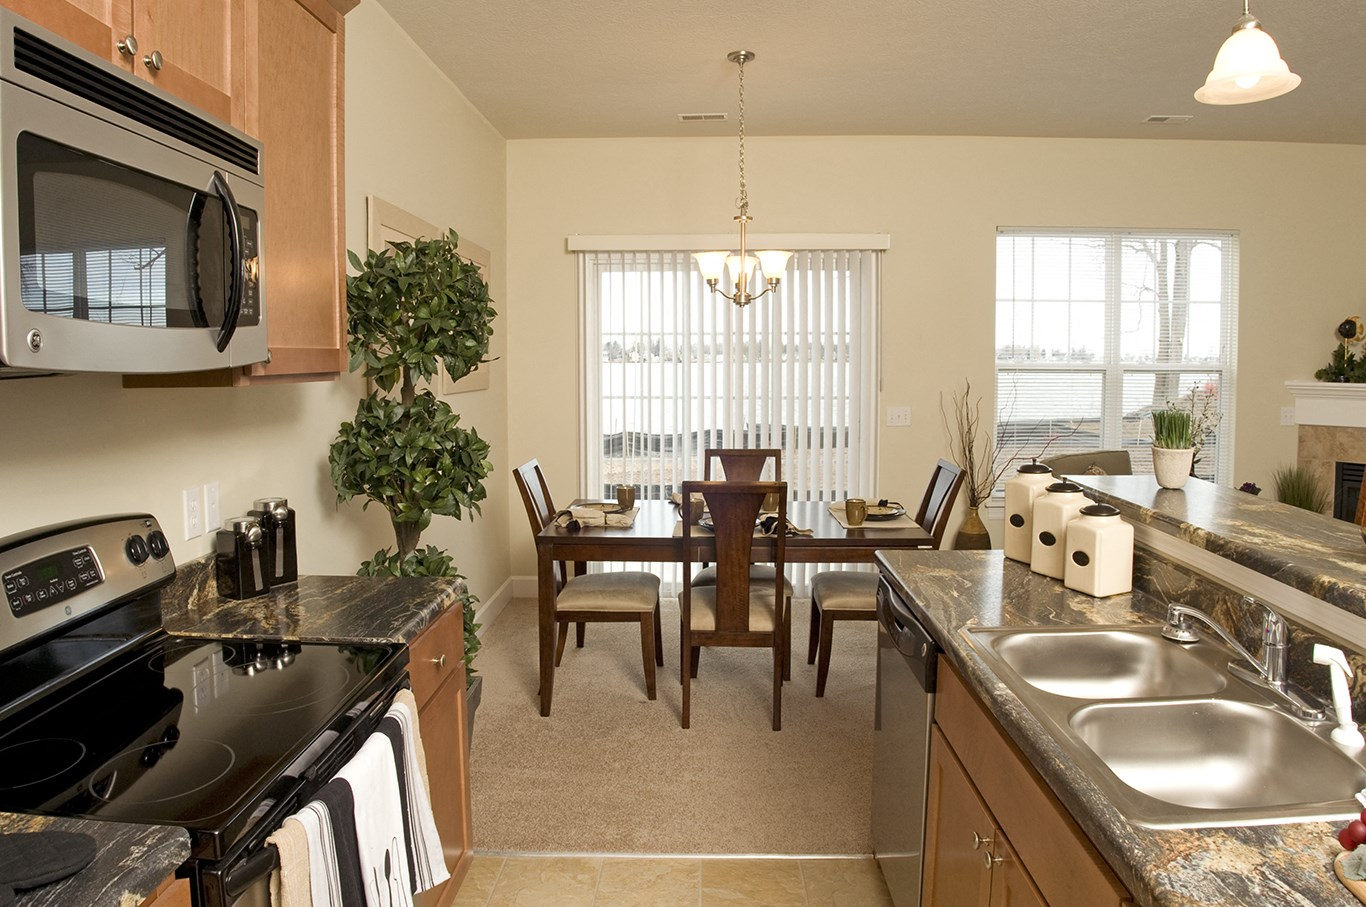 Mobile Homes For Sale Rochester Ny on for rent rochester ny, mobile catering rochester ny, modular homes rochester ny,